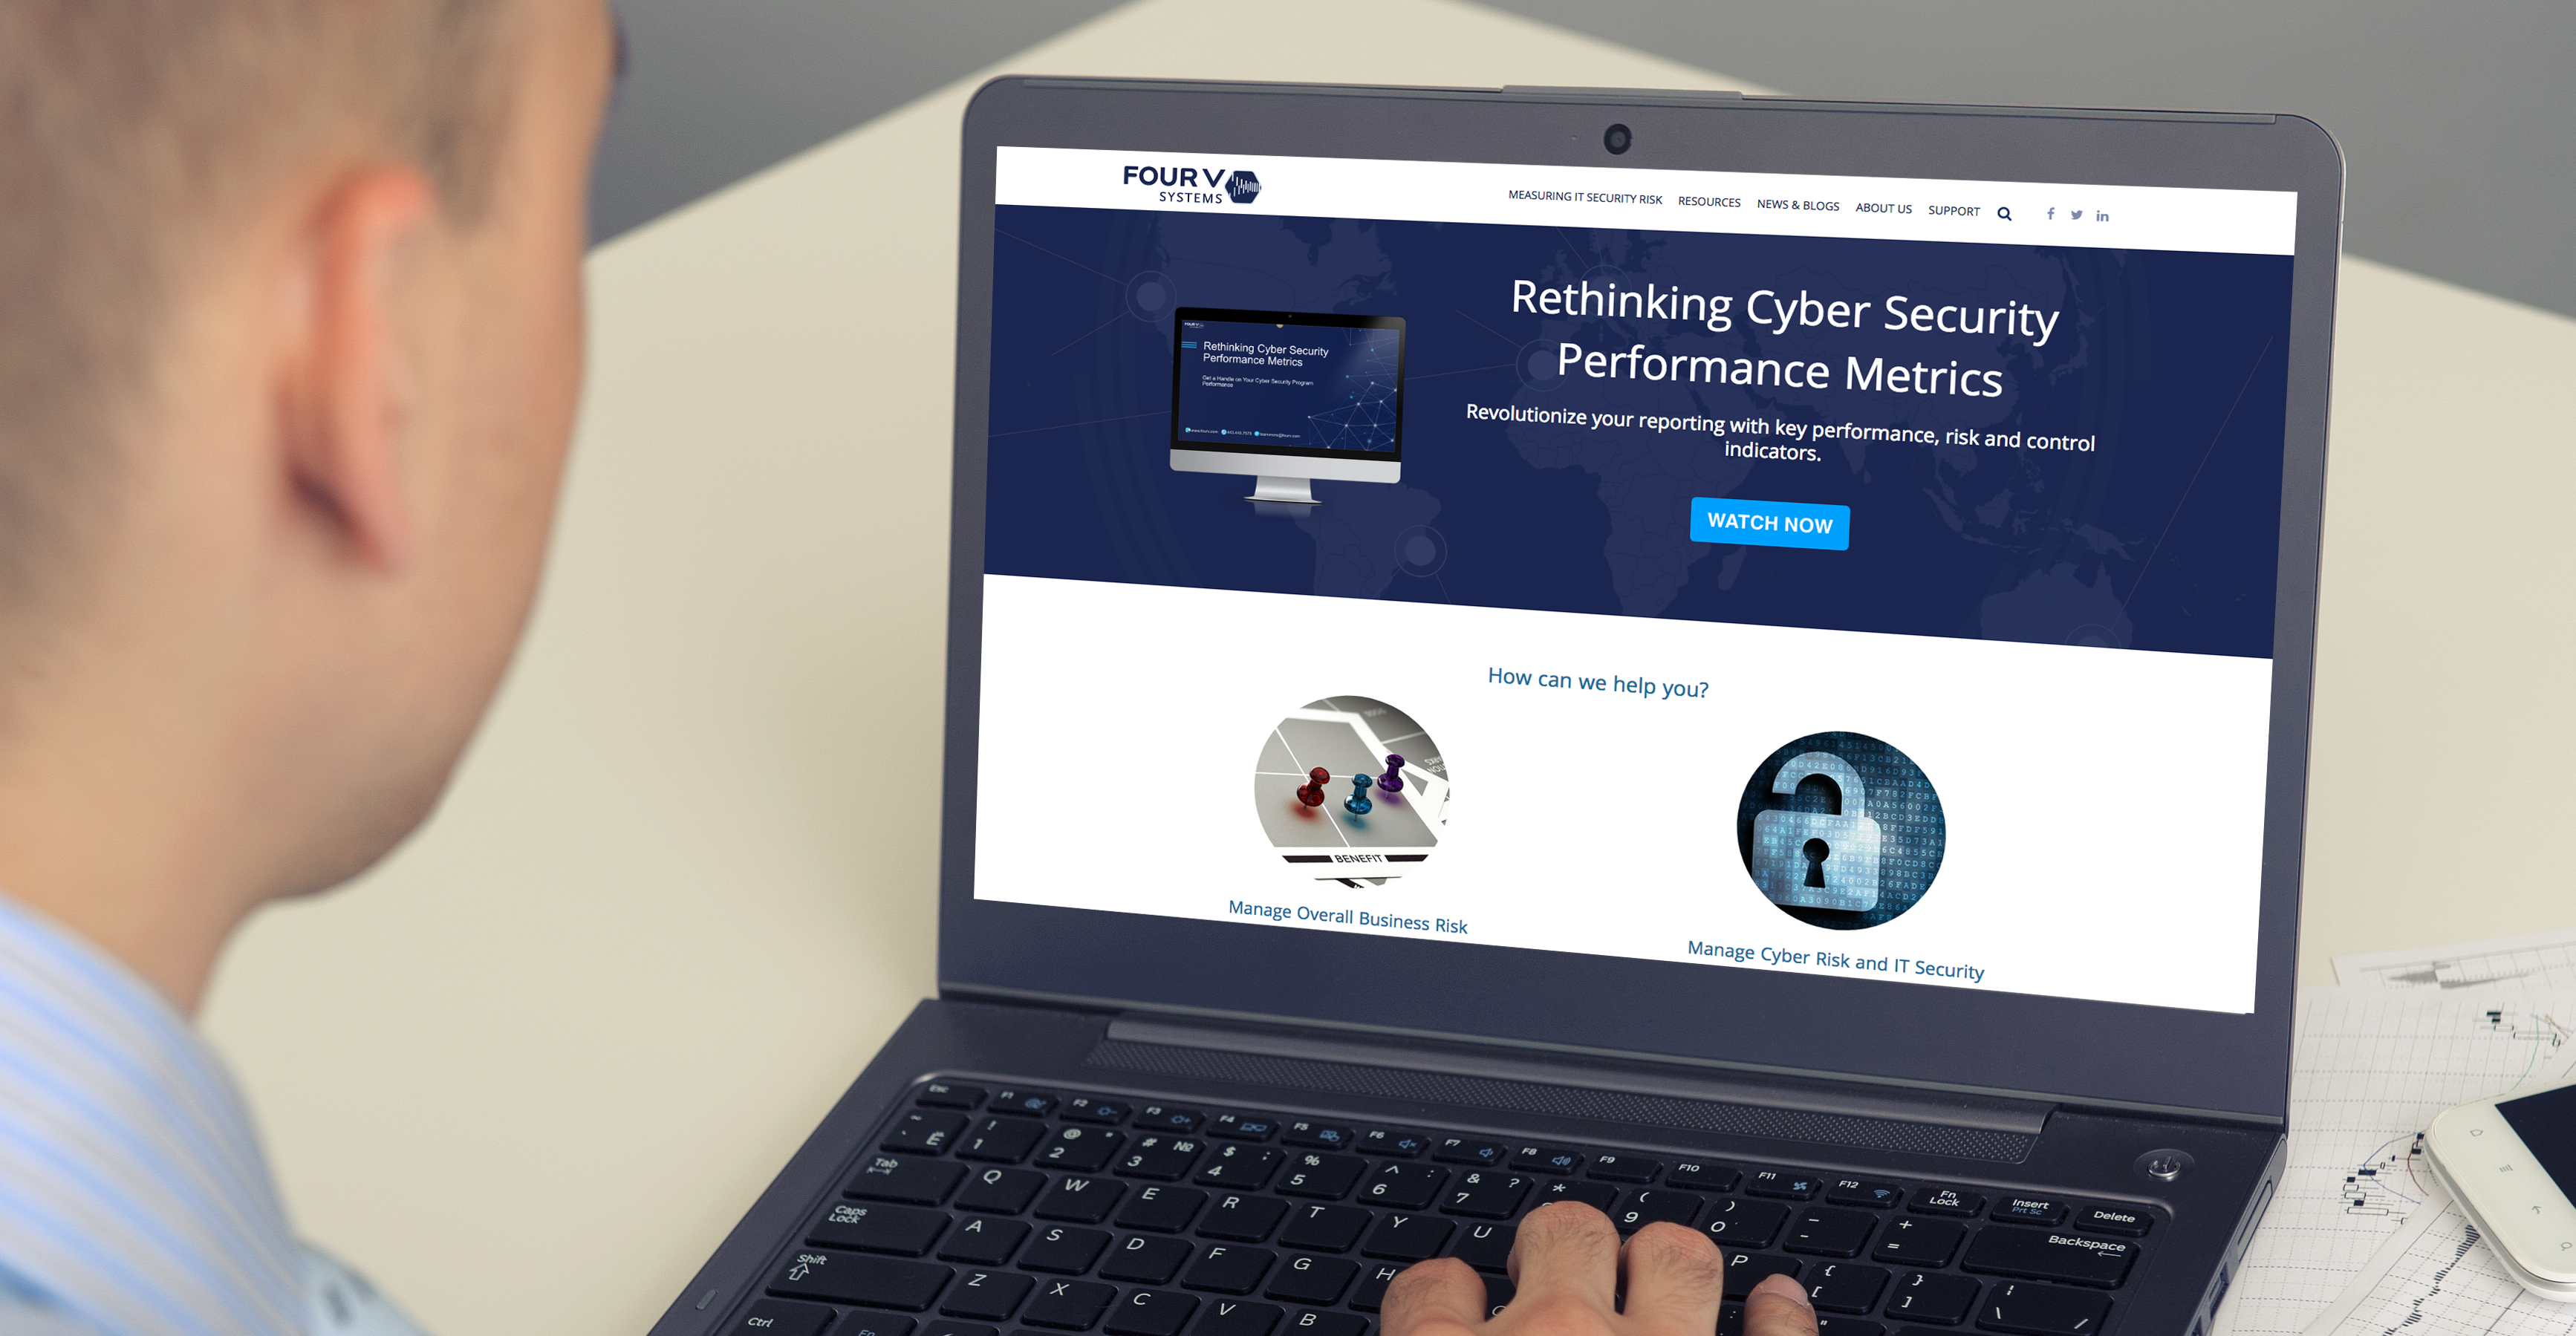 Cyber Security Firm Saw 450% Increase in Leads with HubSpot in 3 Months